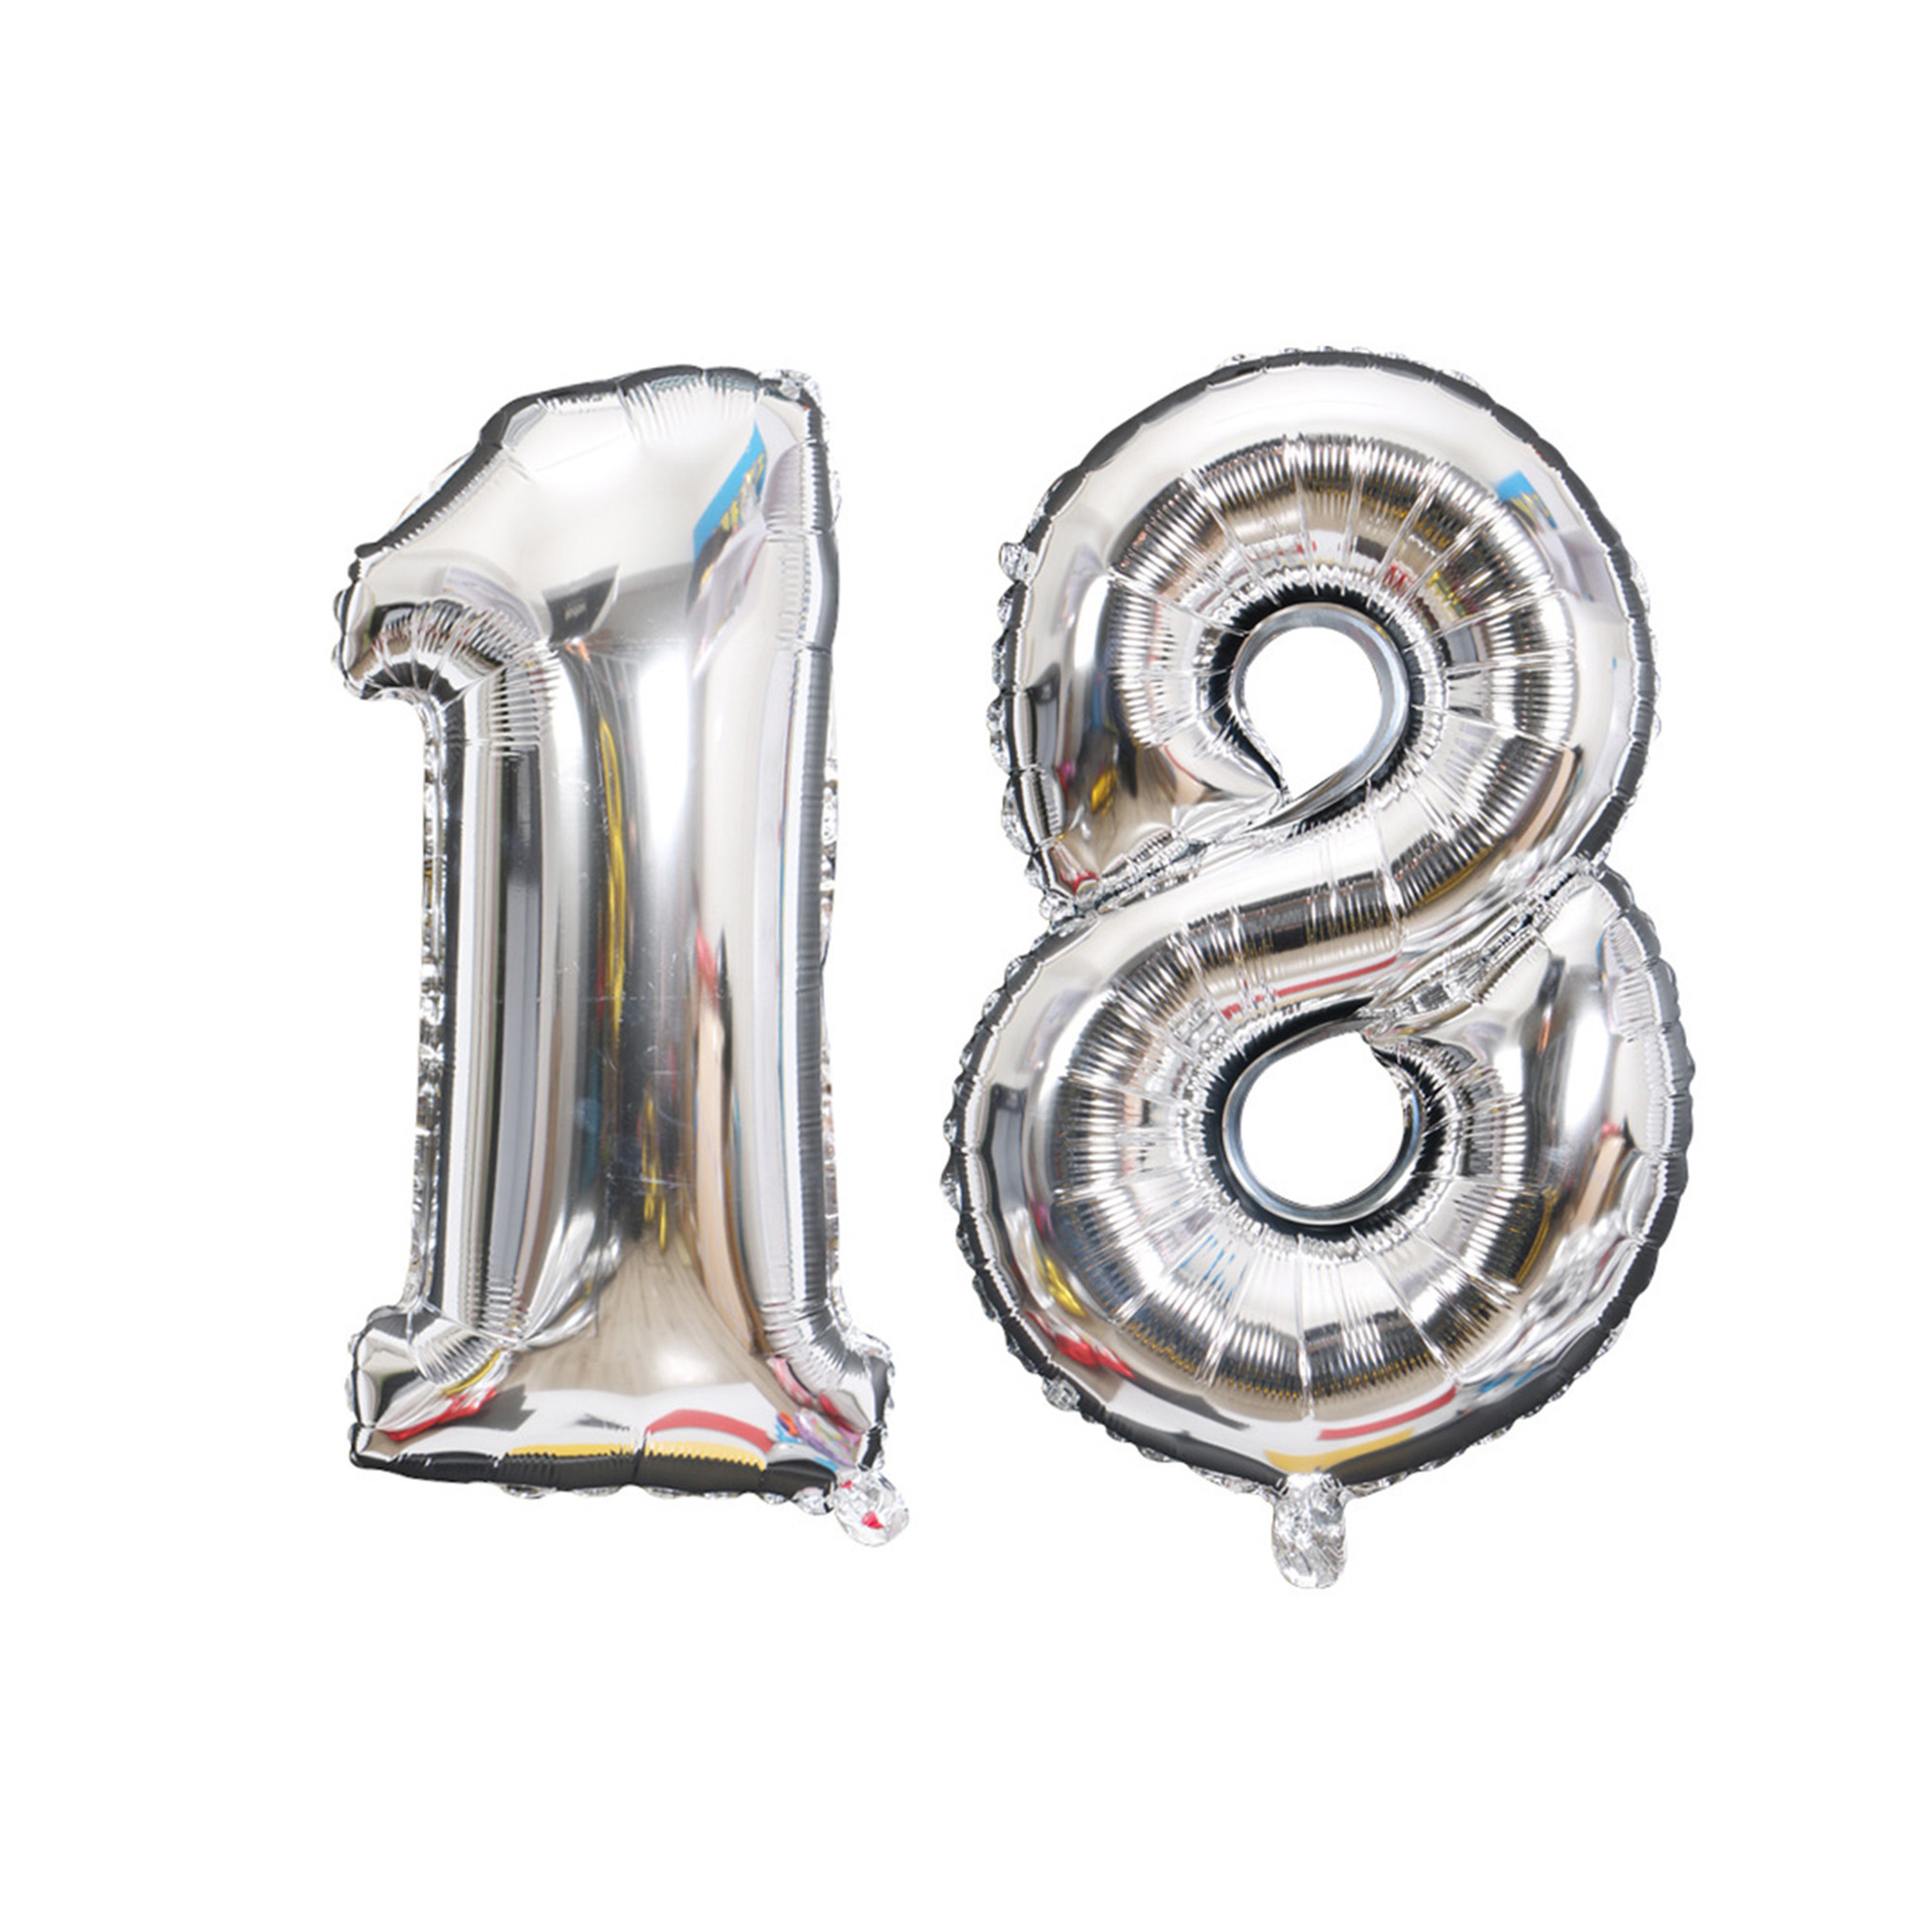 Large 16 32 Inch Balloons Number 16 18 21 30 40 50 Silver Gold Foil ballon Happy Birthday Decoration Anniversary Party Decor